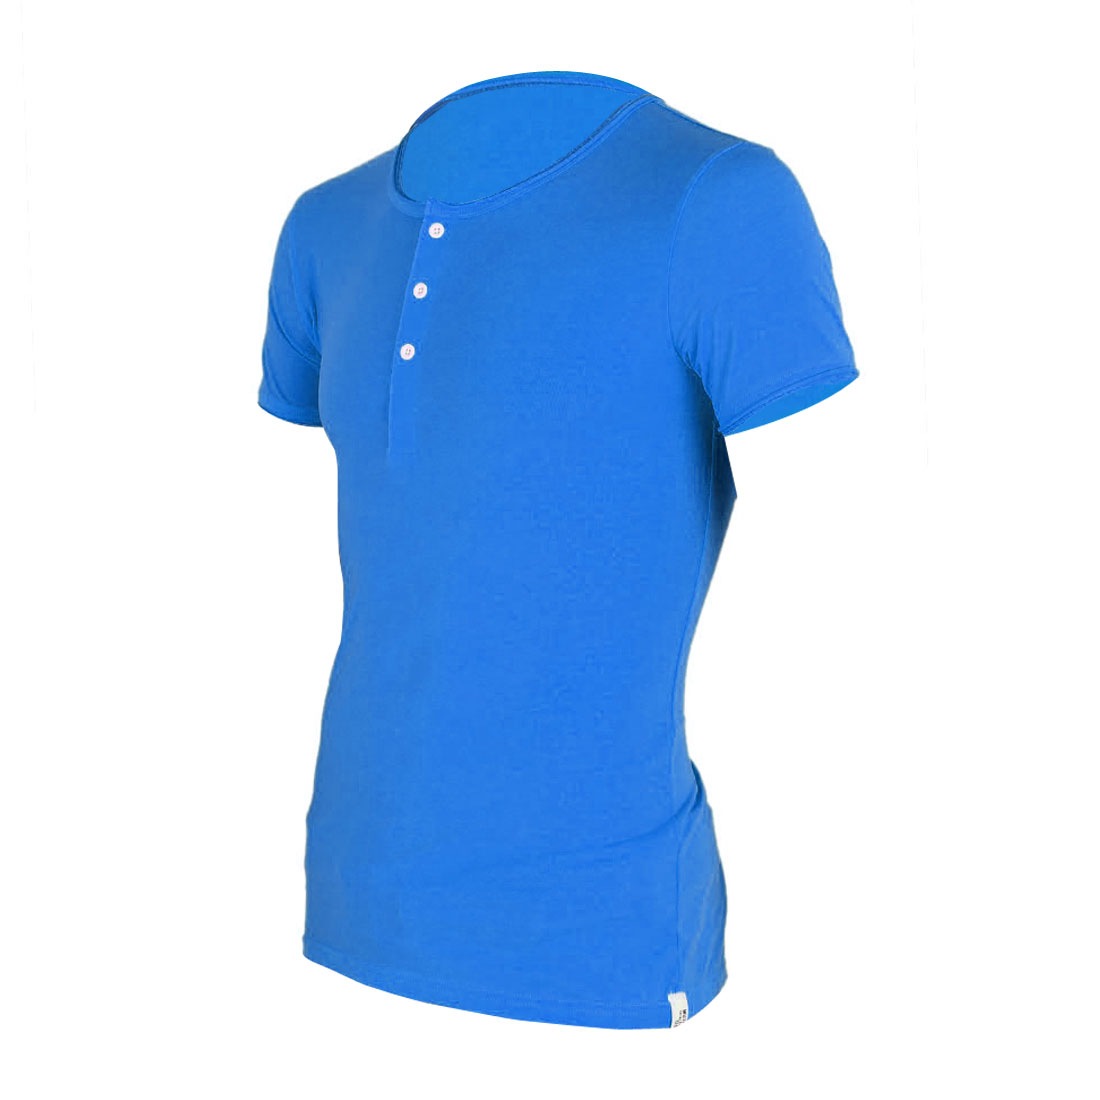 Mens Blue Three Button Design Front Casual Tee Shirt S